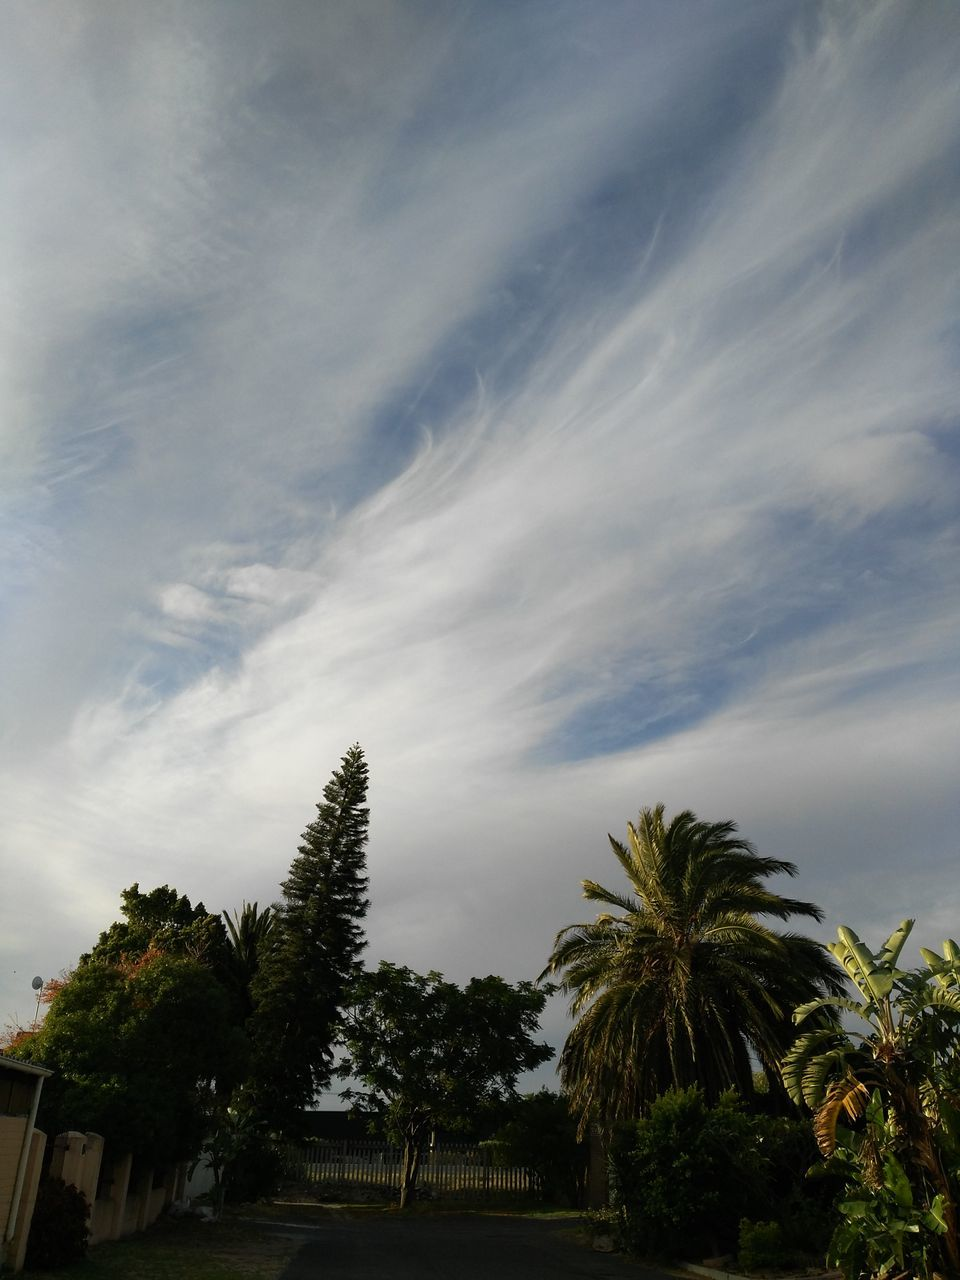 tree, sky, cloud - sky, nature, no people, beauty in nature, scenics, tranquility, palm tree, growth, low angle view, outdoors, day